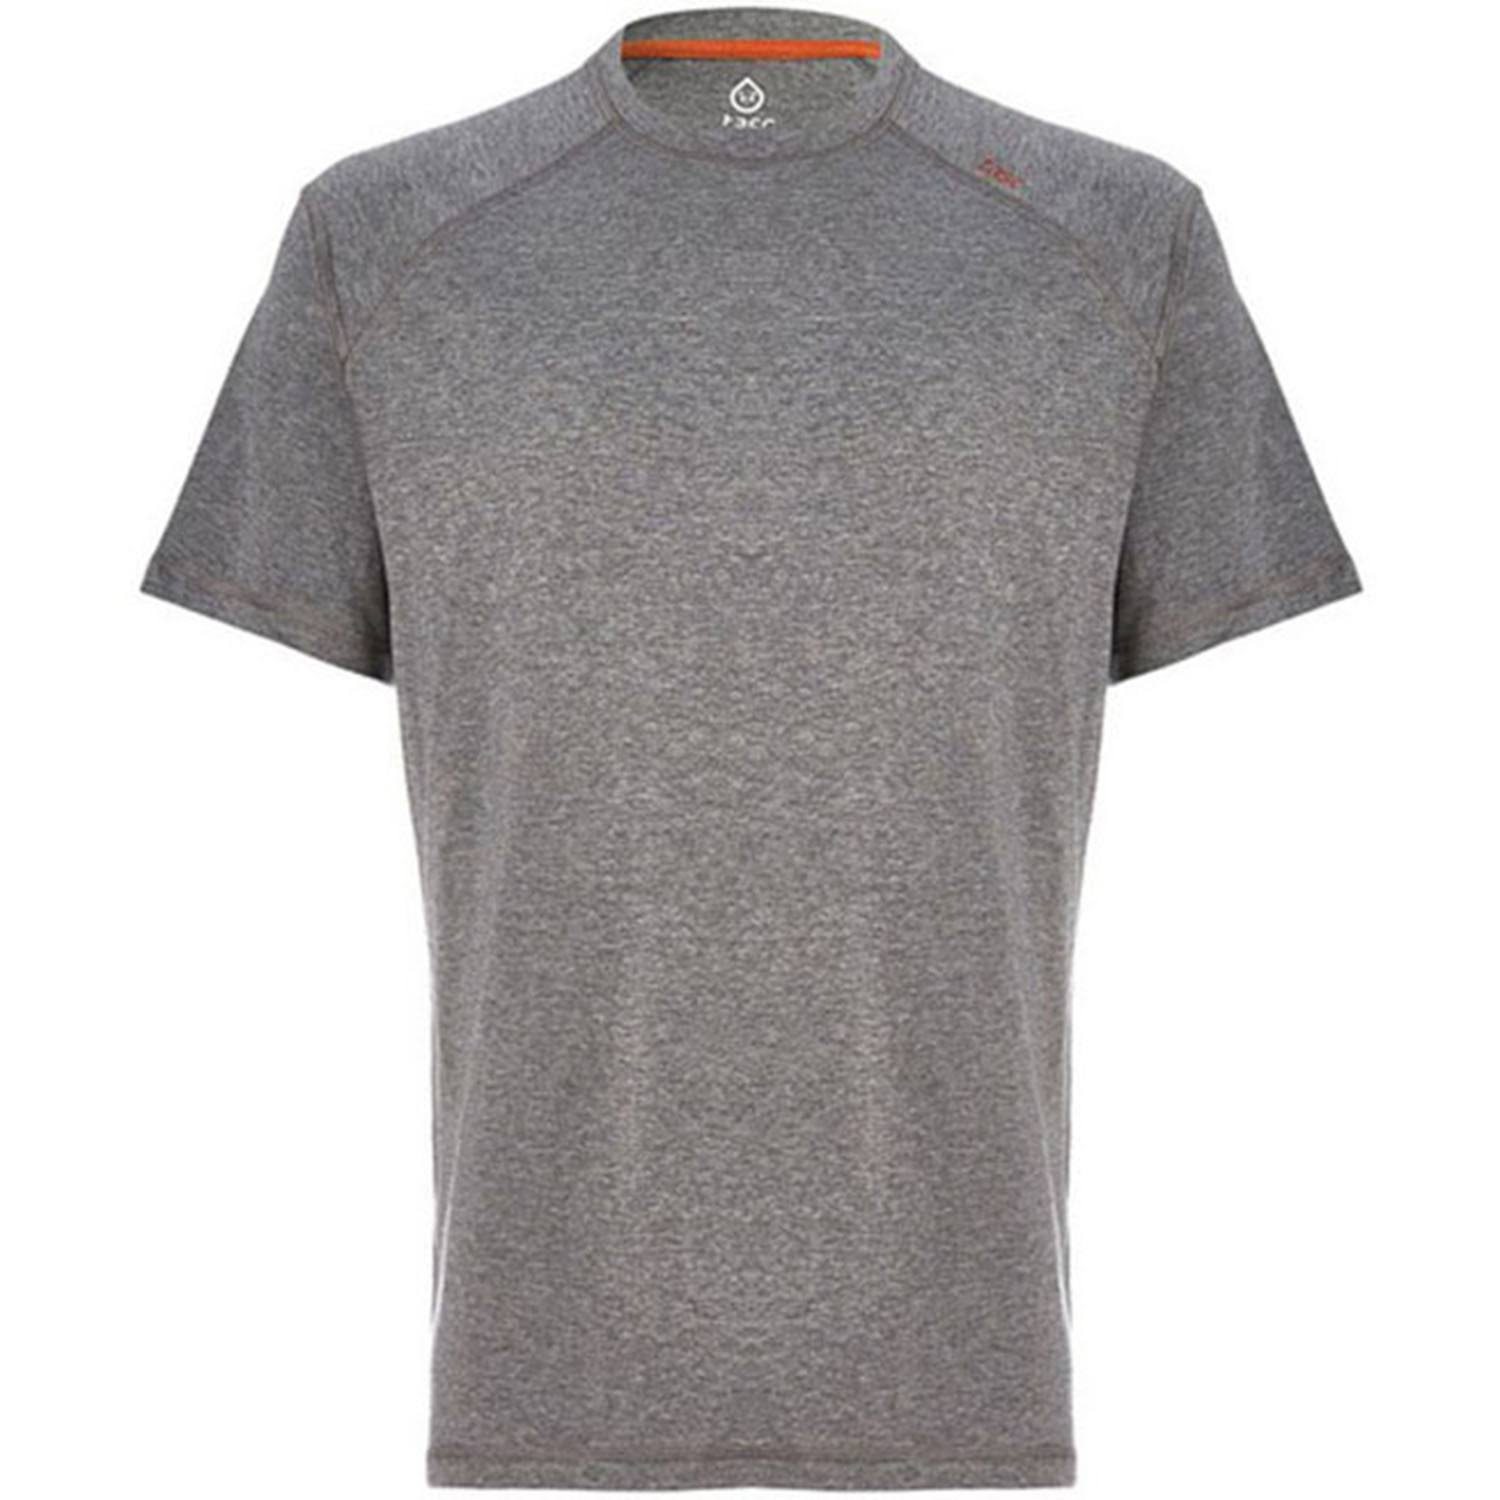 tasc Men's Carrollton Performance Crew Heather Gray XL